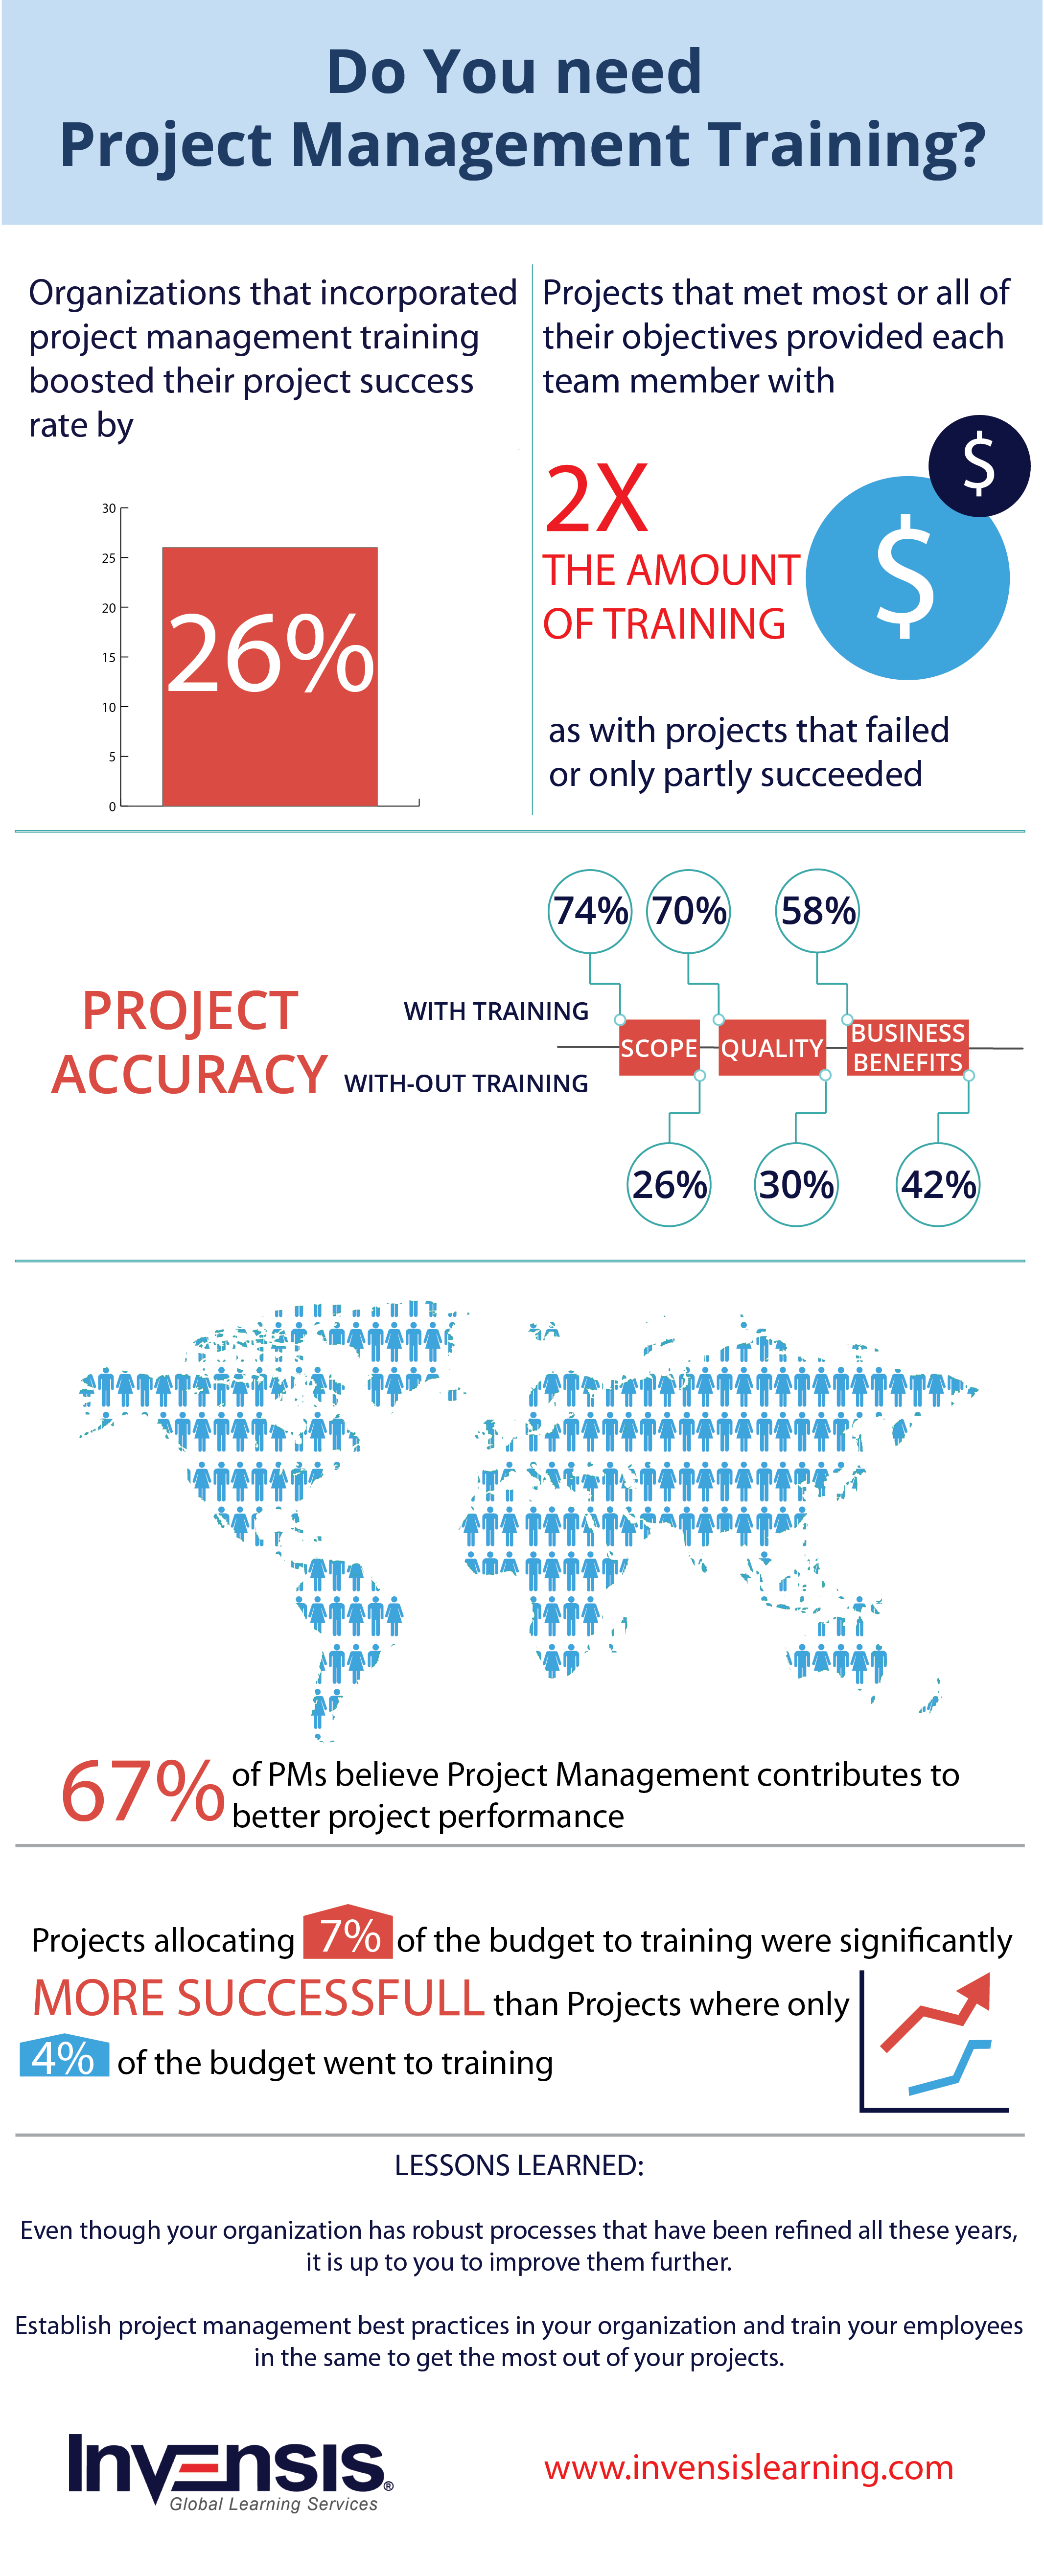 The importance of project management training infographic http an infographic depicting why you need project management certification training understand how organizations that incorporated project management training xflitez Image collections